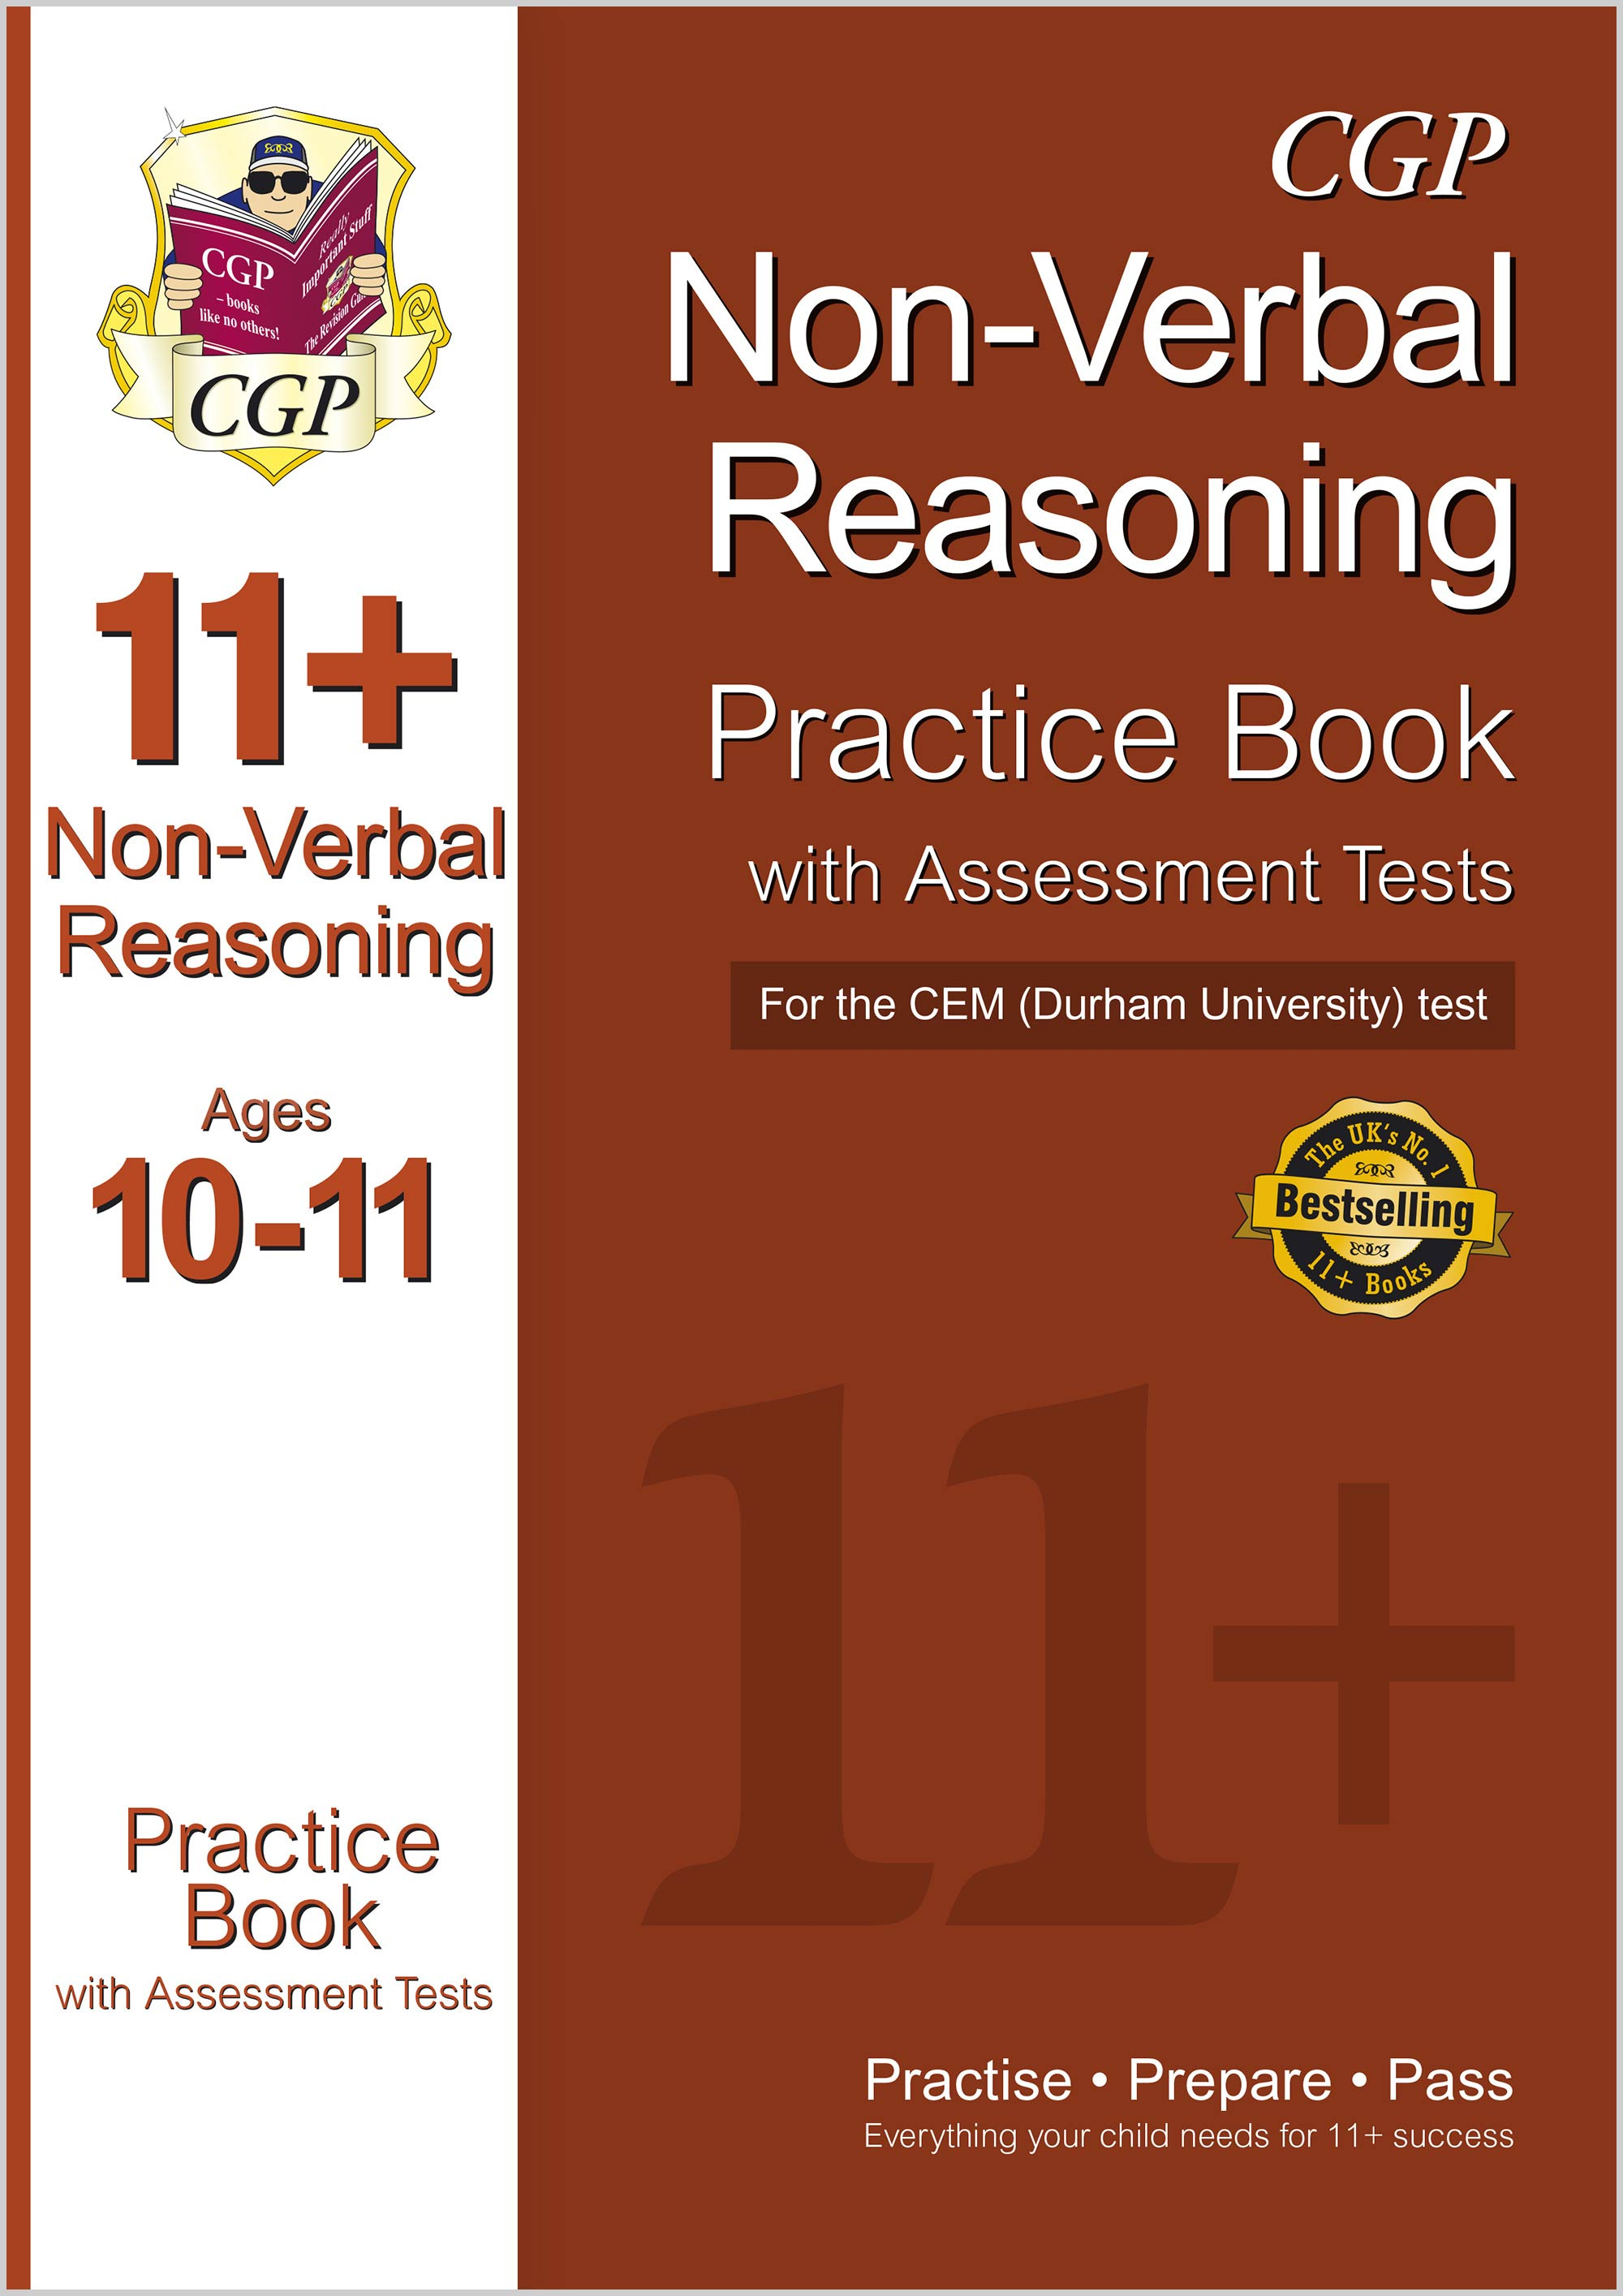 N6QDE1DK - 11+ Non-Verbal Reasoning Practice Book with Assessment Tests (Ages 10-11) for the CEM Tes